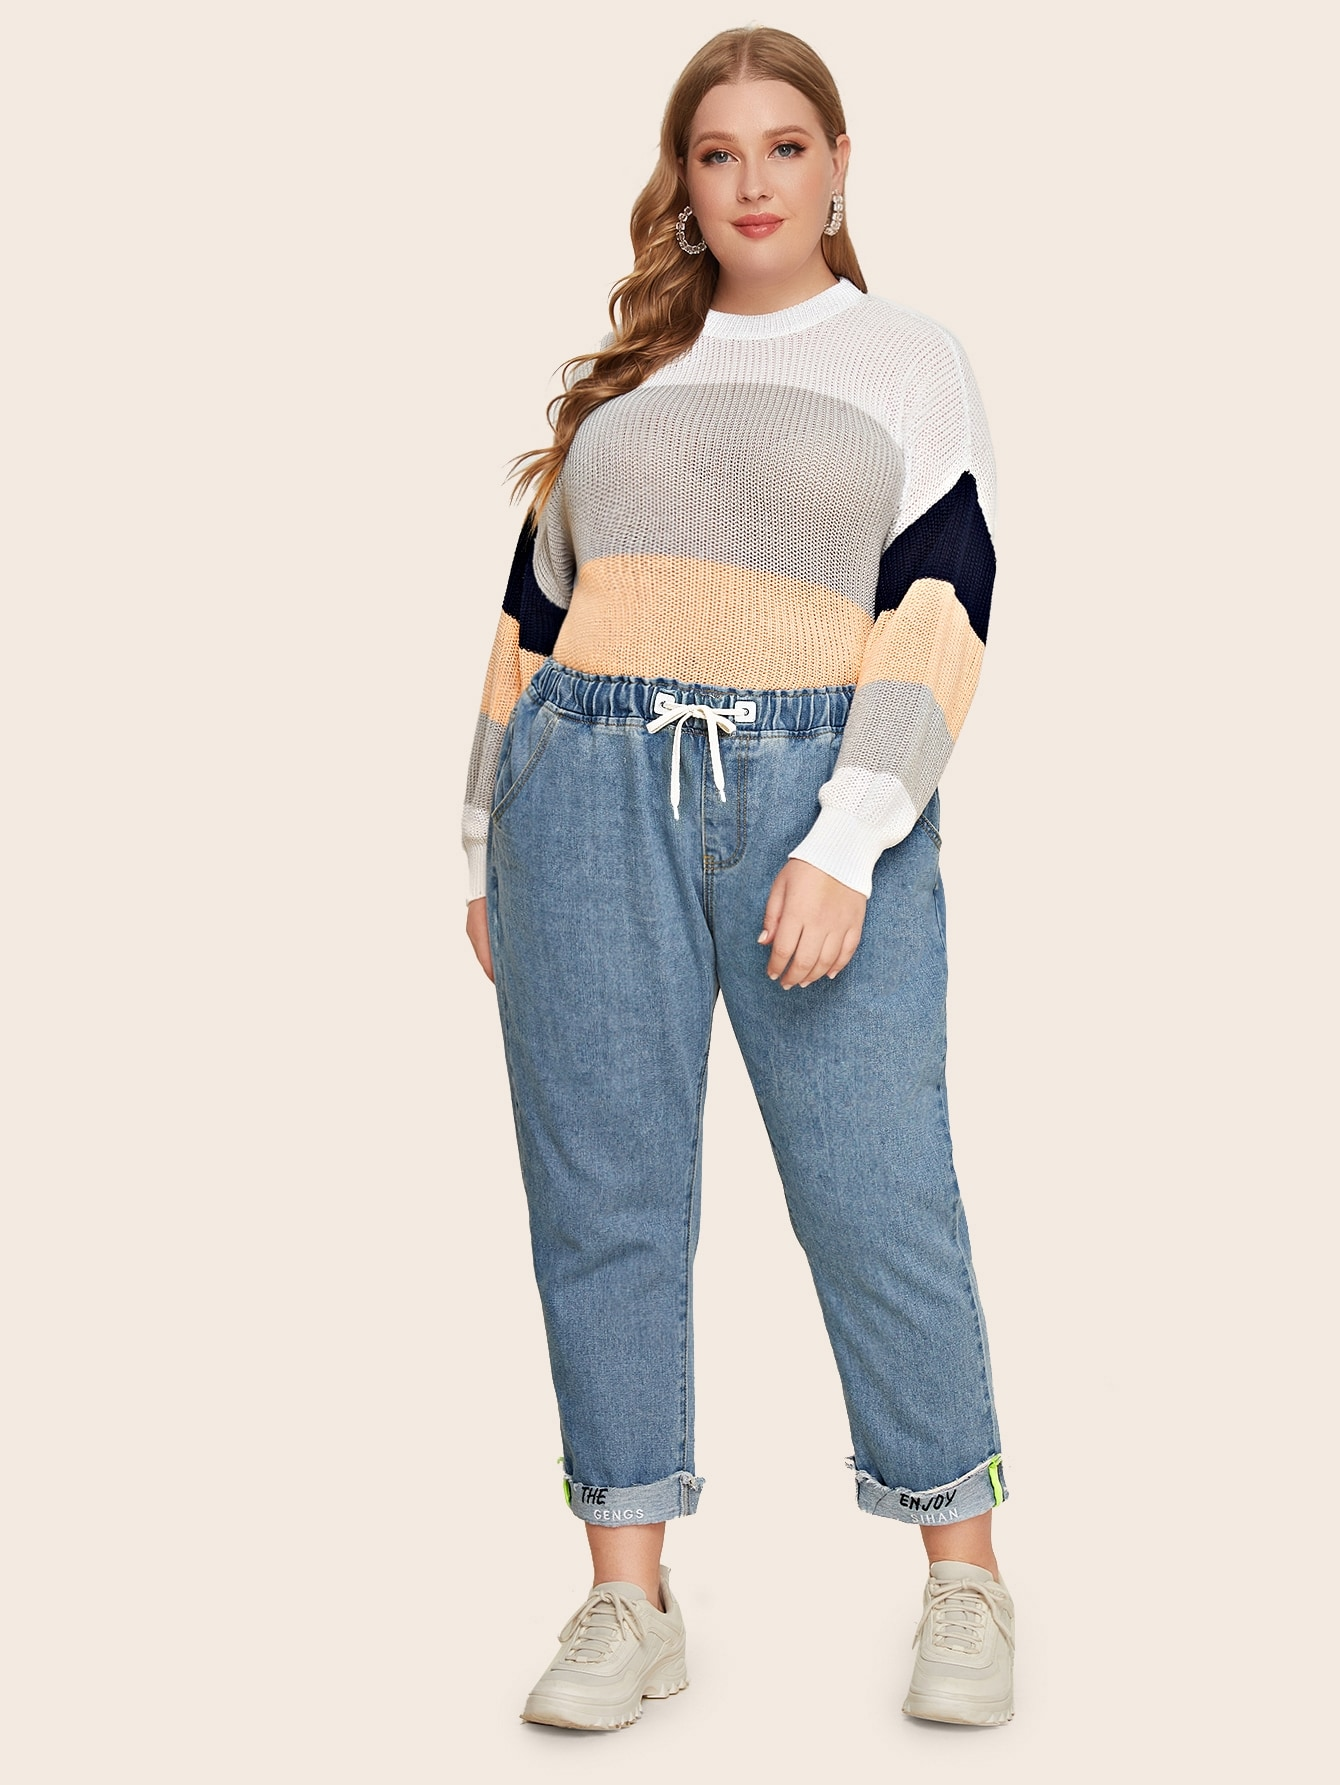 Plus Drawstring Waist Letter Embroidery Jeans